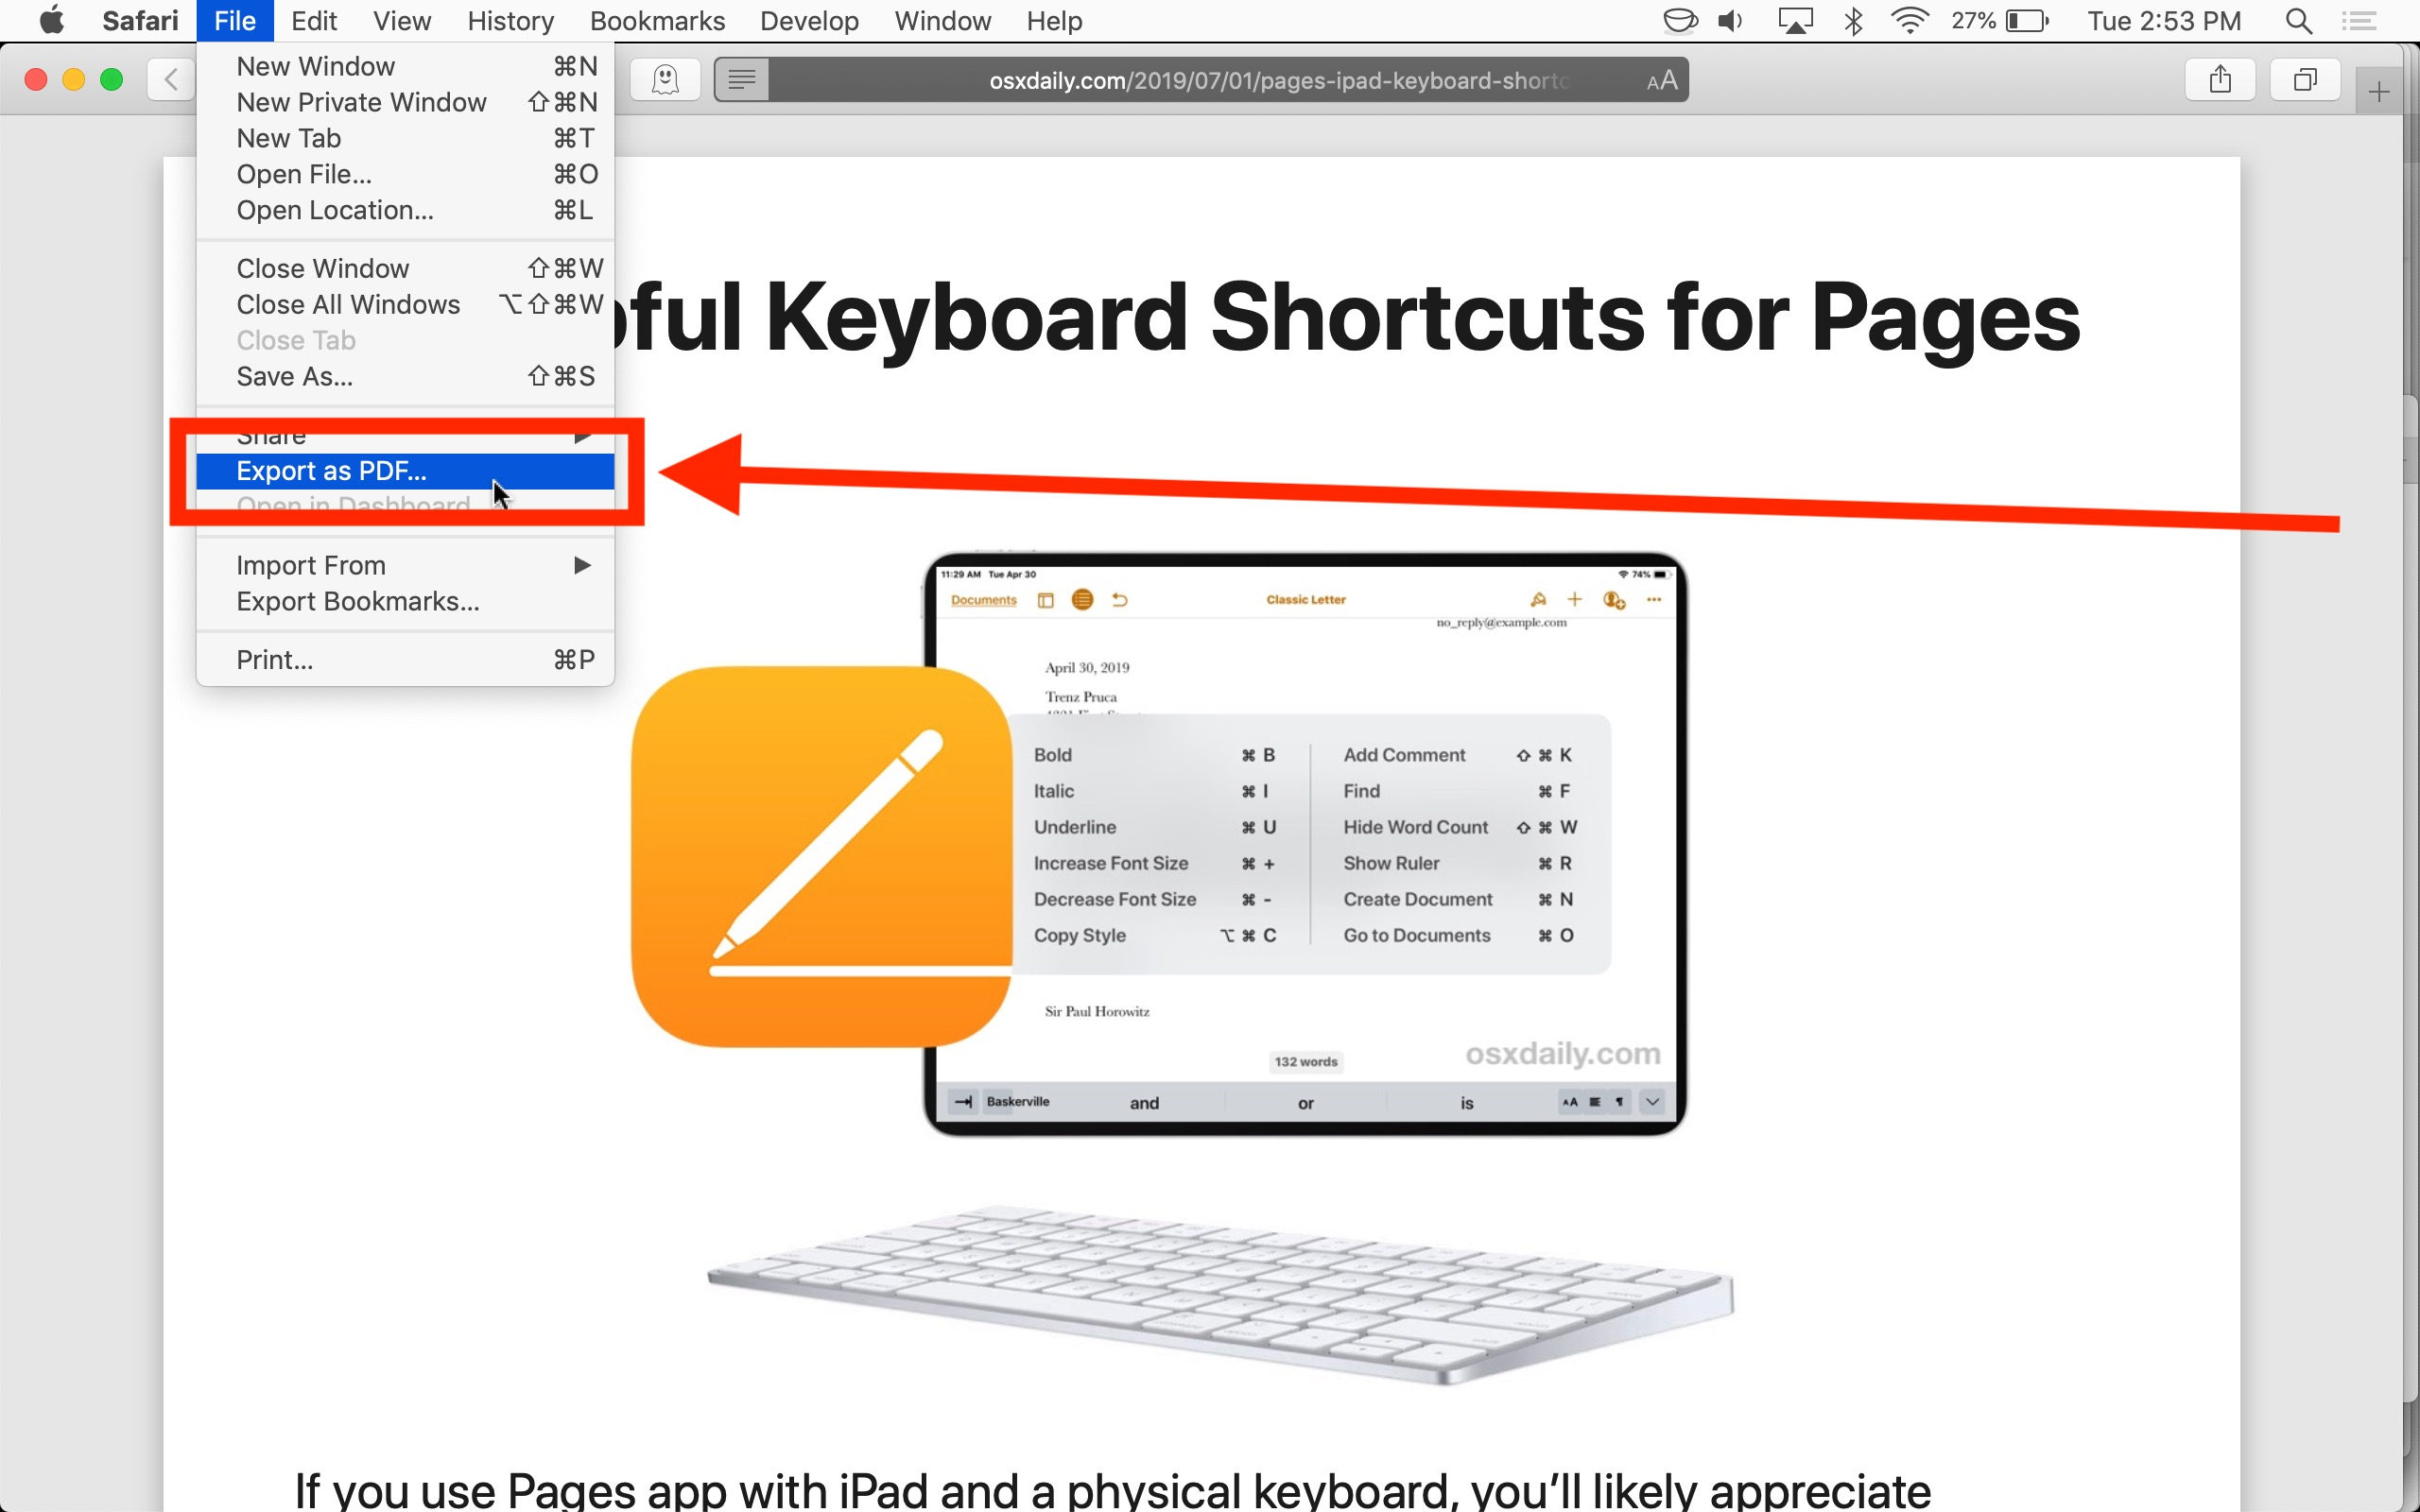 How to save a webpage as PDF on Mac with Safari by using Export as PDF